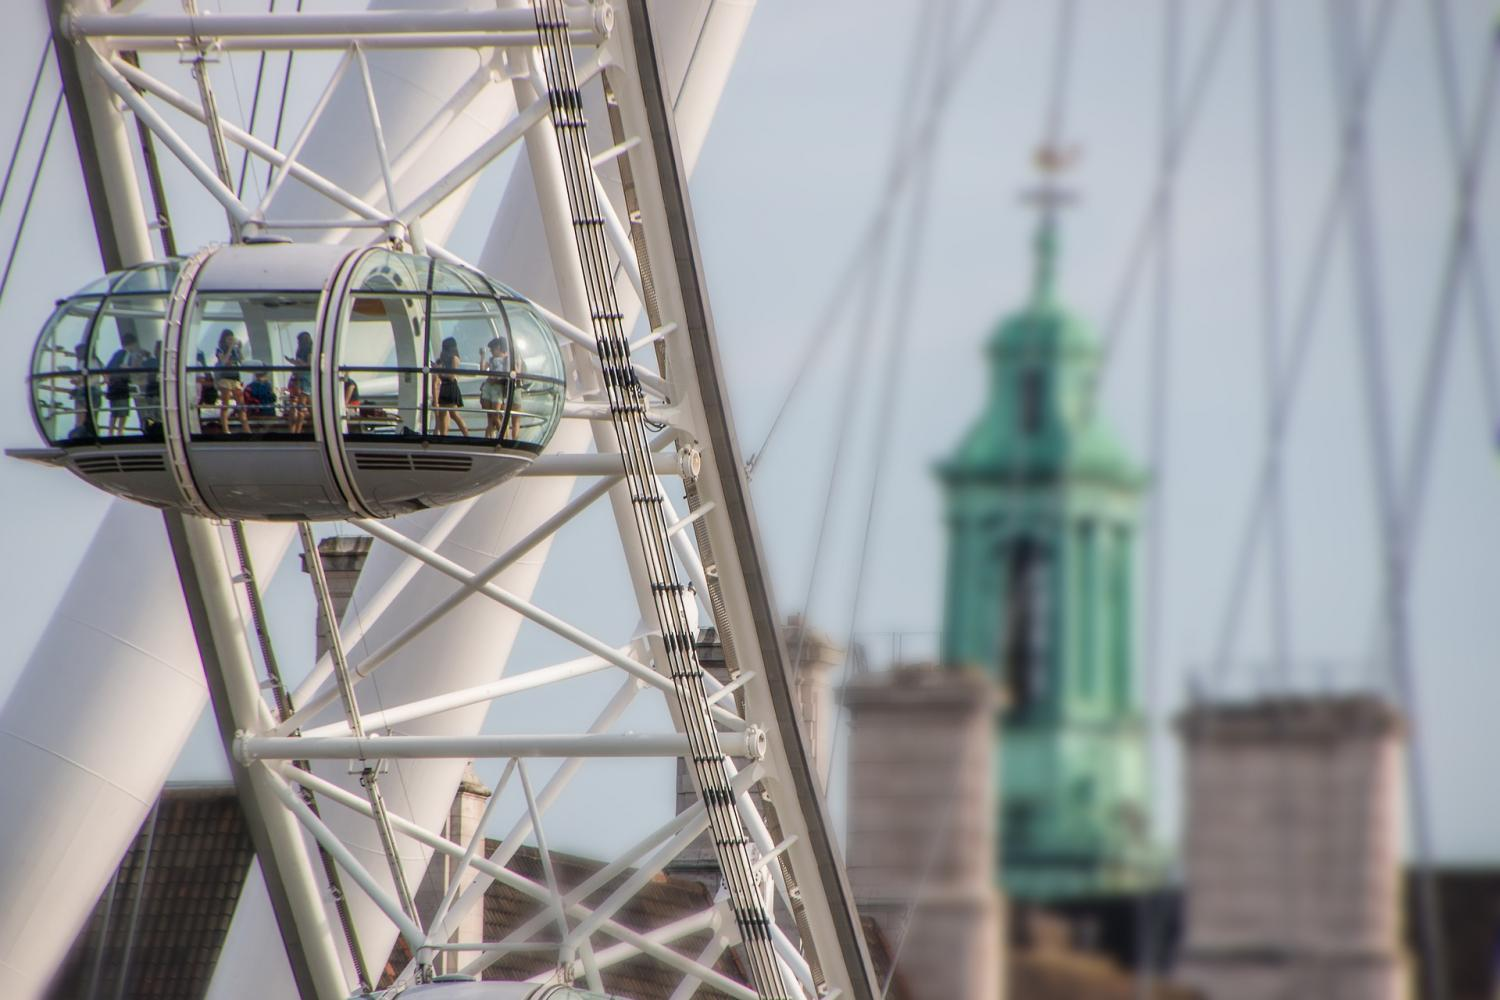 Full-Day London Experience & London Eye